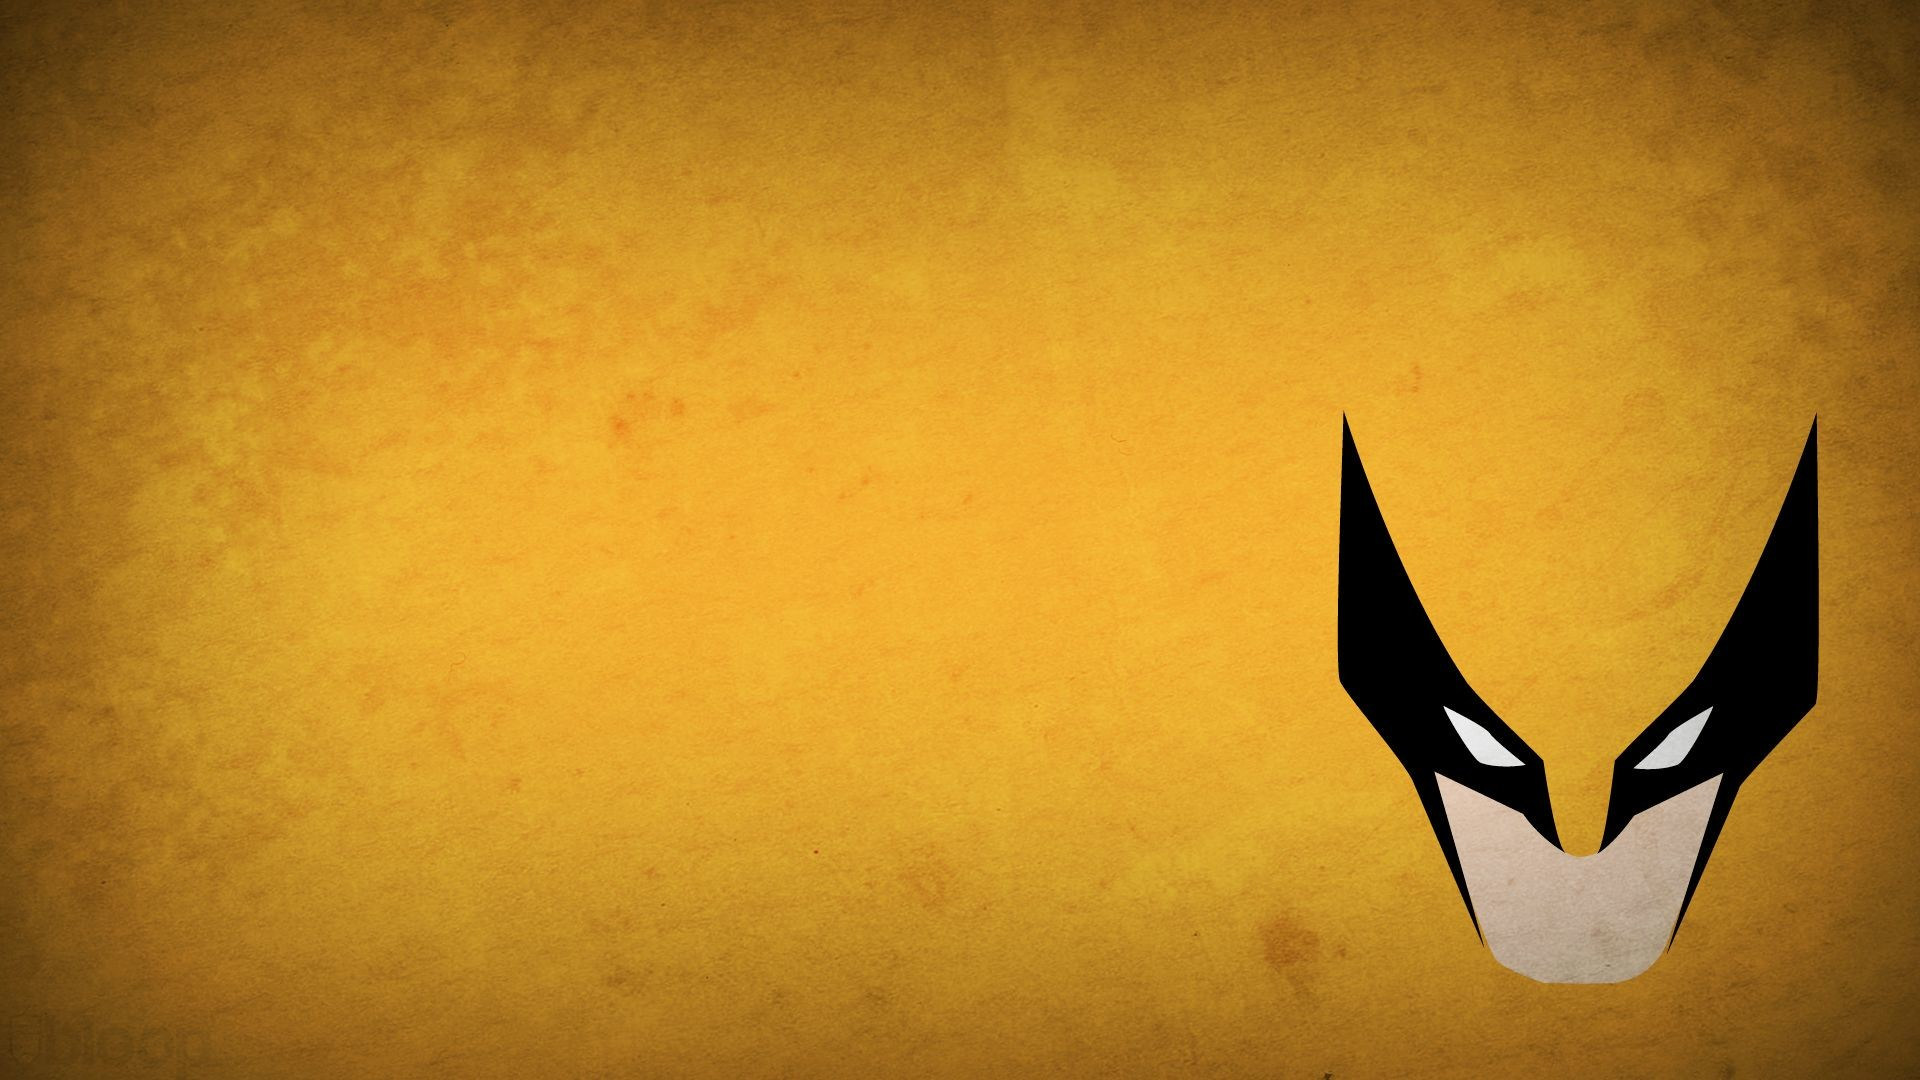 1920x1080 minimalistic X-Men Wolverine superheroes Marvel Comics yellow background -  Wallpaper ( / Wallbase.